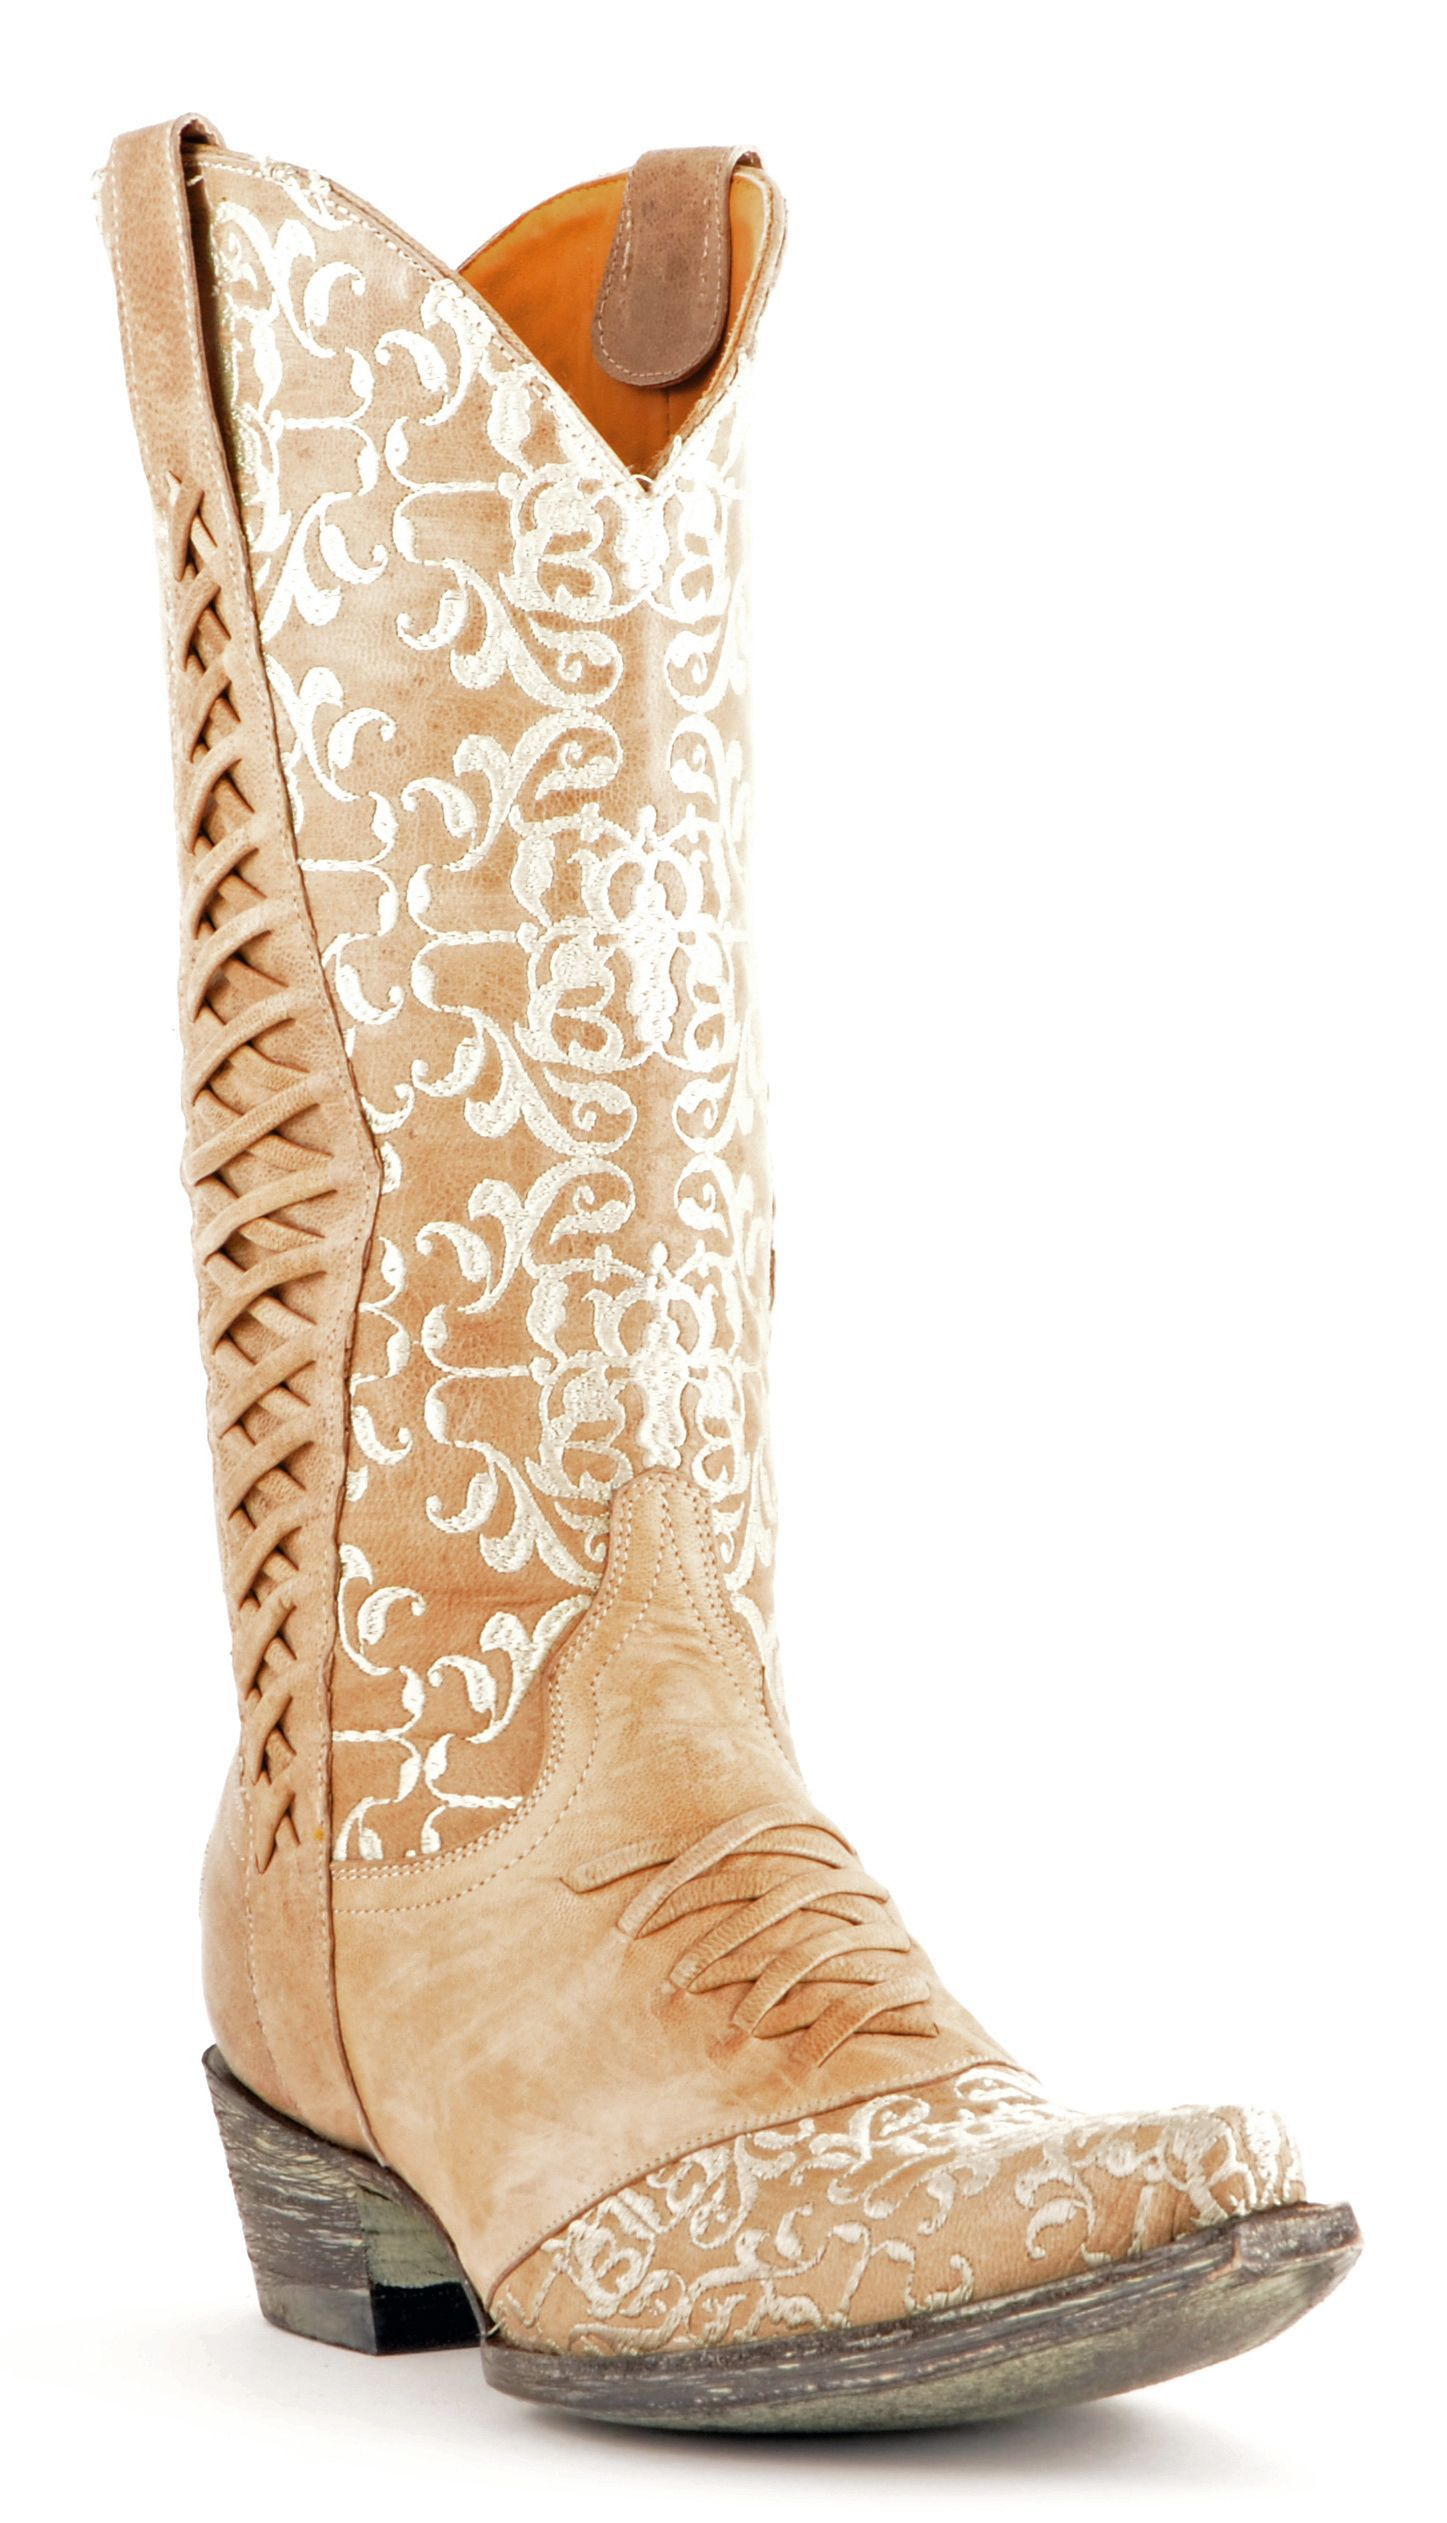 Awesome Western Style Wedding Dresses with Cowboy Boots 2017 ...